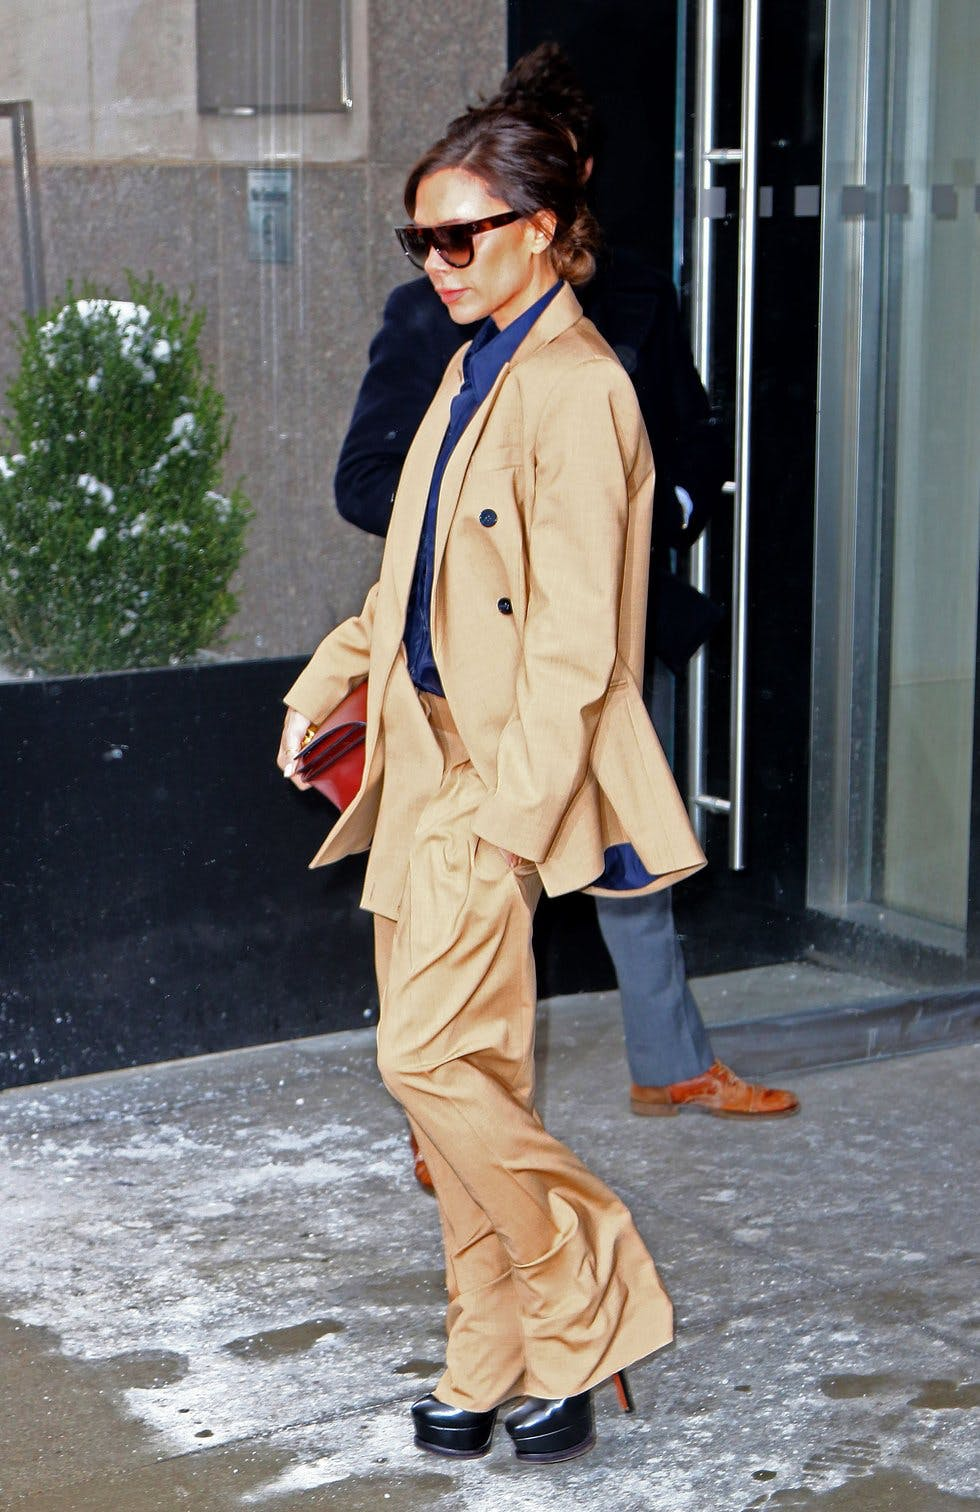 12a2fa2eed0 Get daily outfit inspiration with our round-up of the best A-list ...